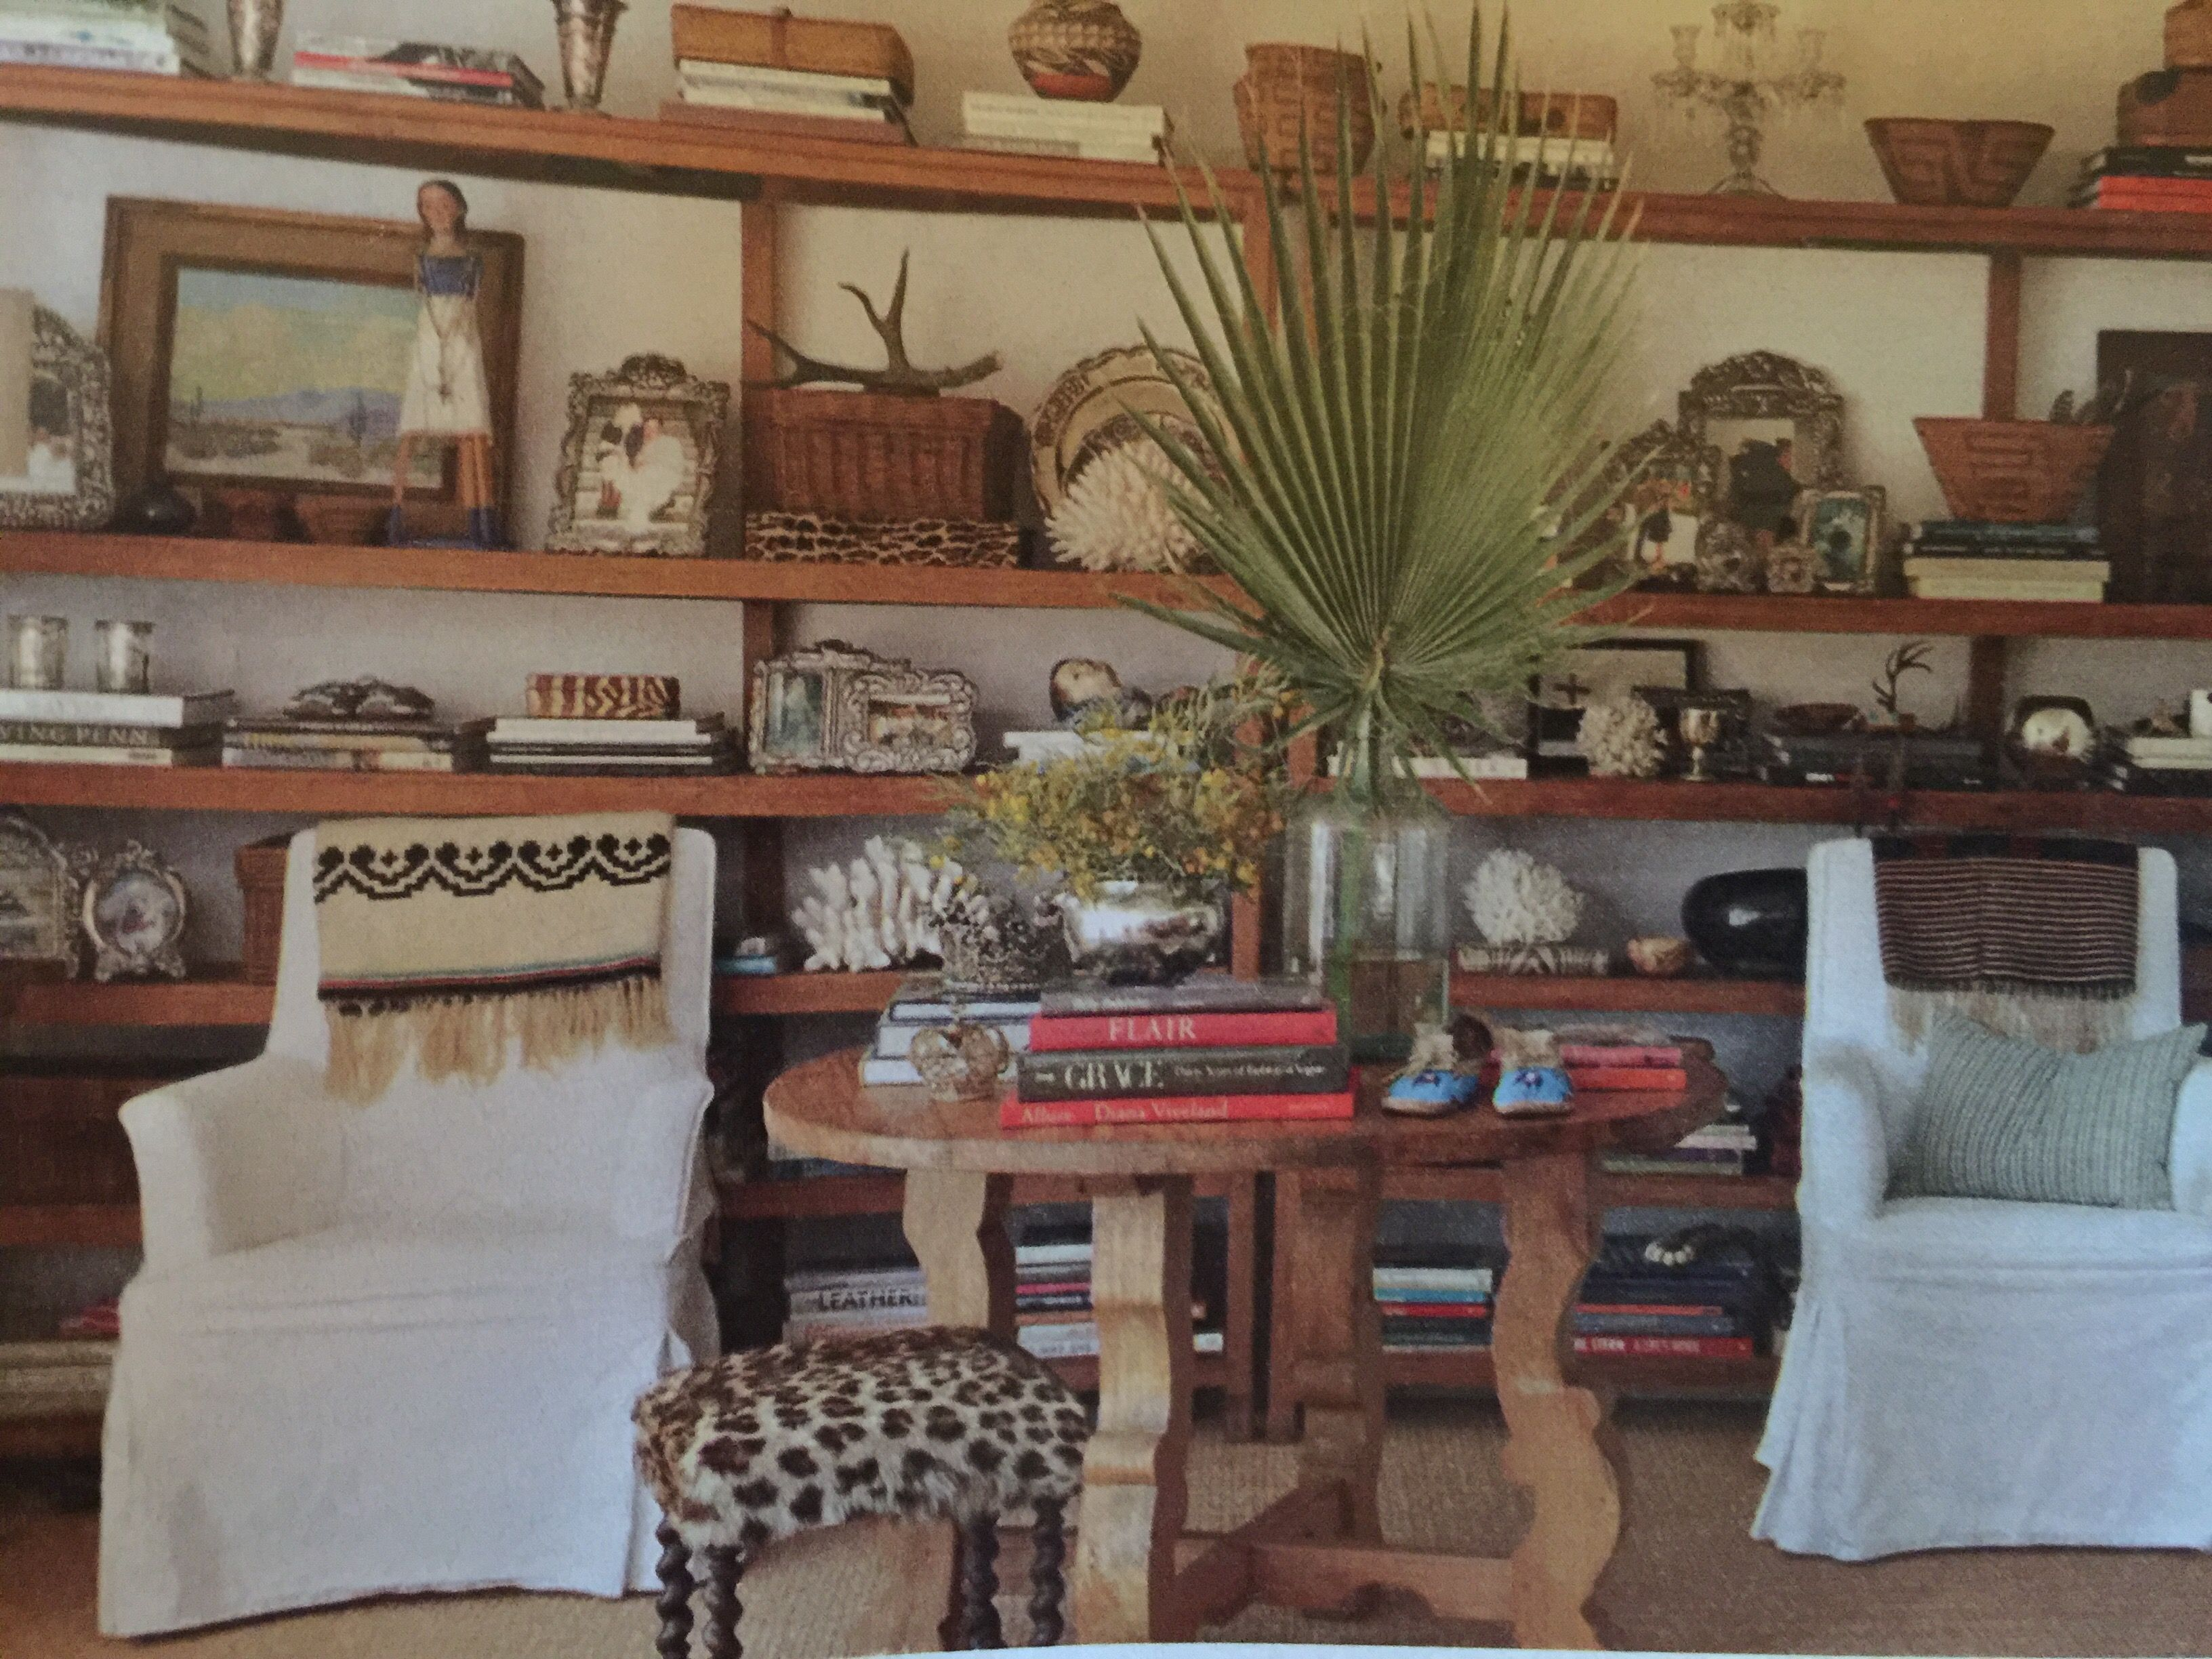 From BHG Mary Emmerlings Home Like The Shelves And Natural Look Maybe With